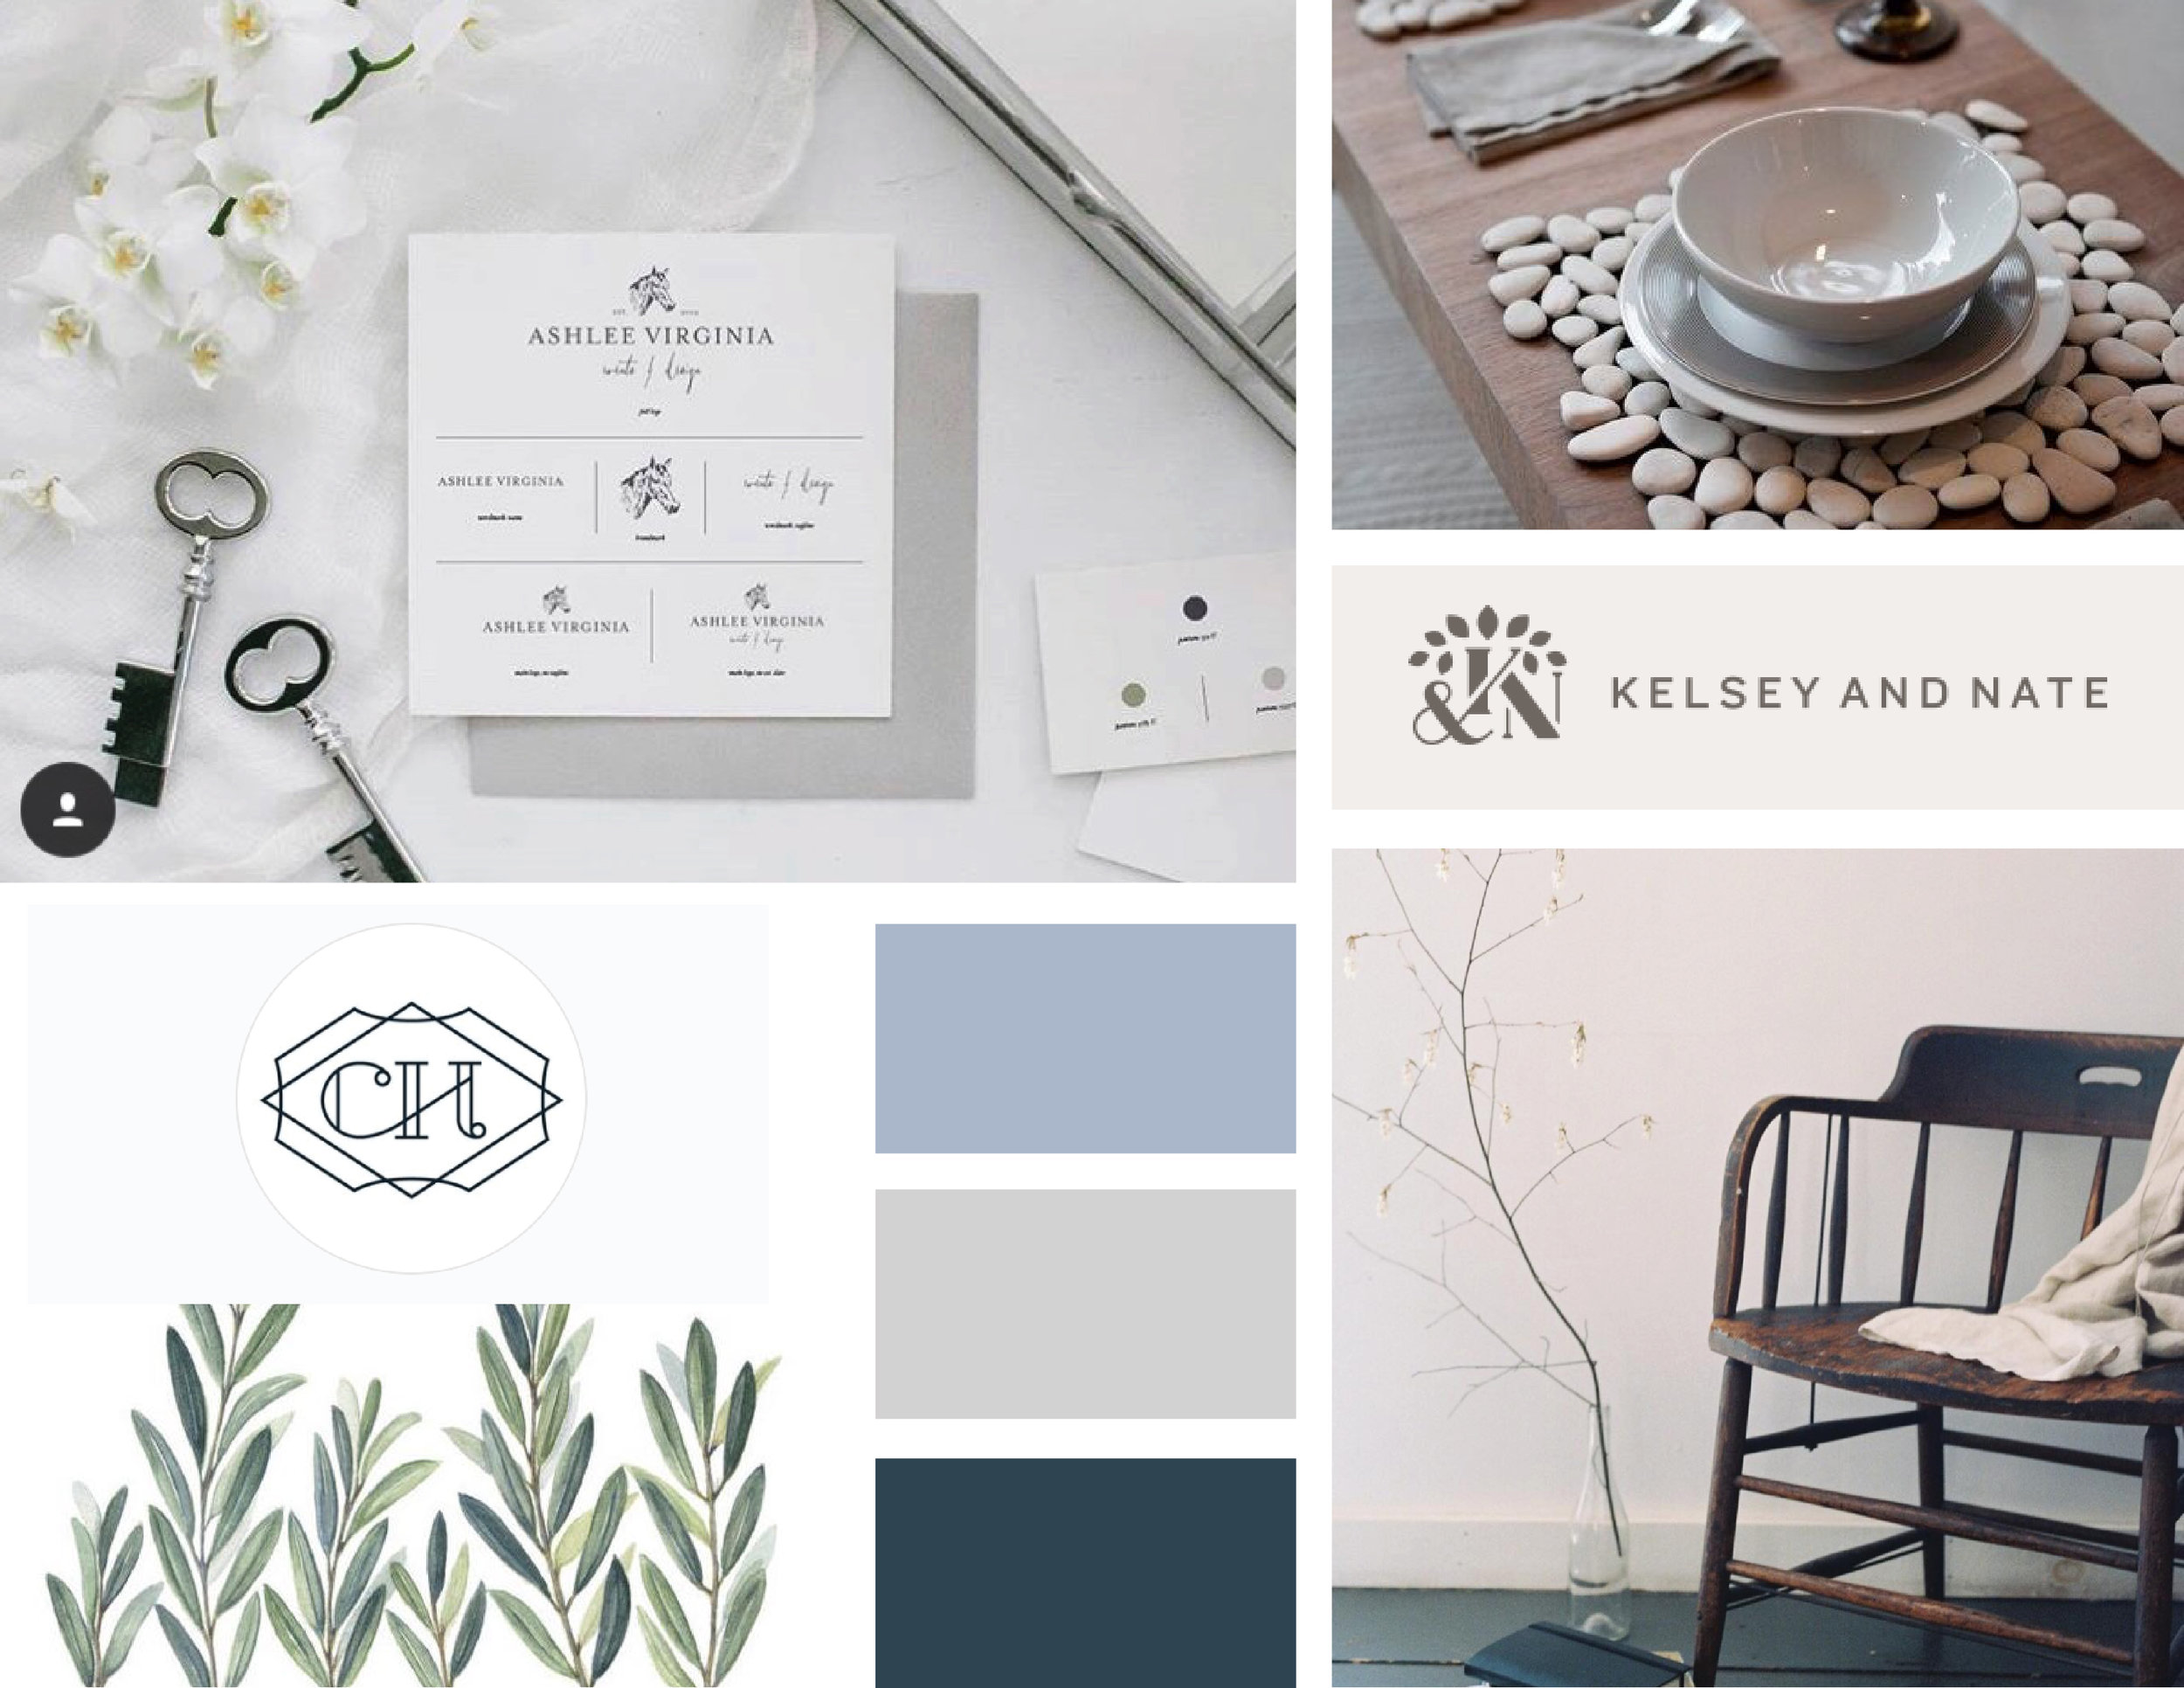 Paige Hulse Law – contract law firm – Hayley Bigham Designs – Tulsa Oklahoma Branding Studio – professional structured logo design - moodboard